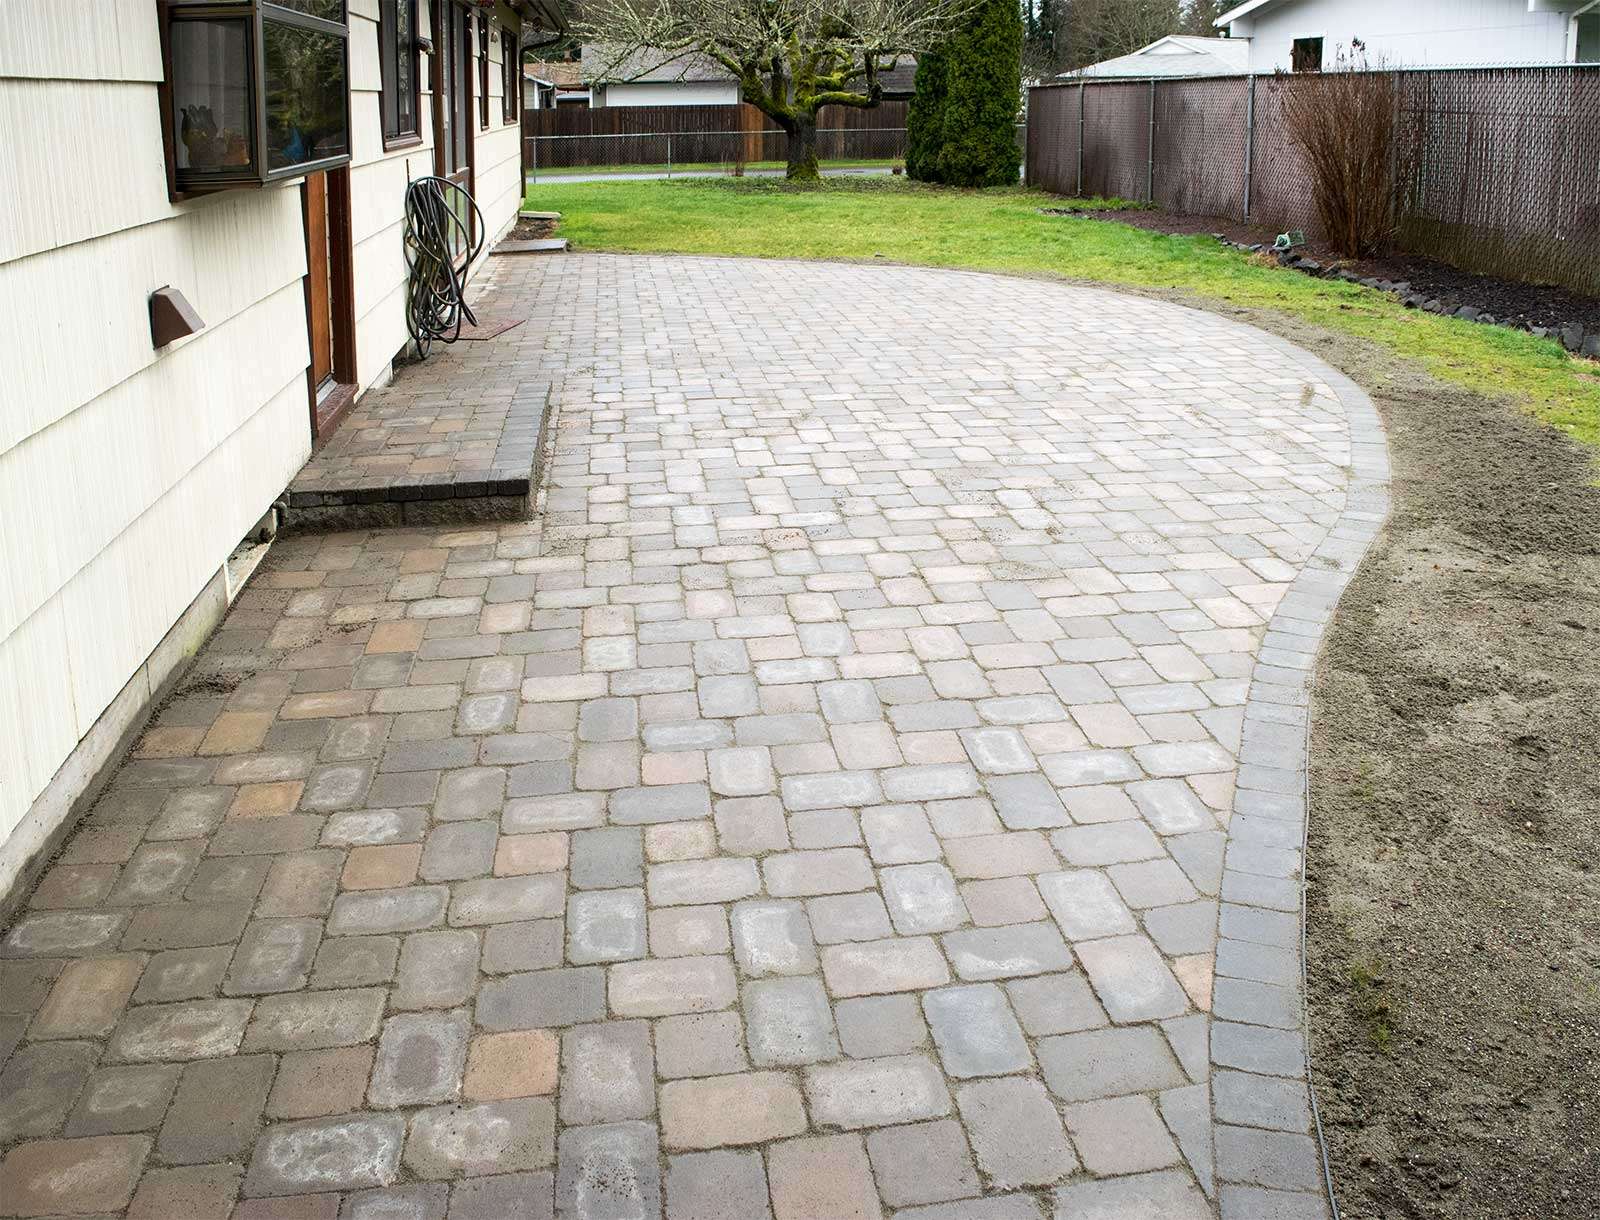 Finished Paver Patio Finished Paver Patio ...